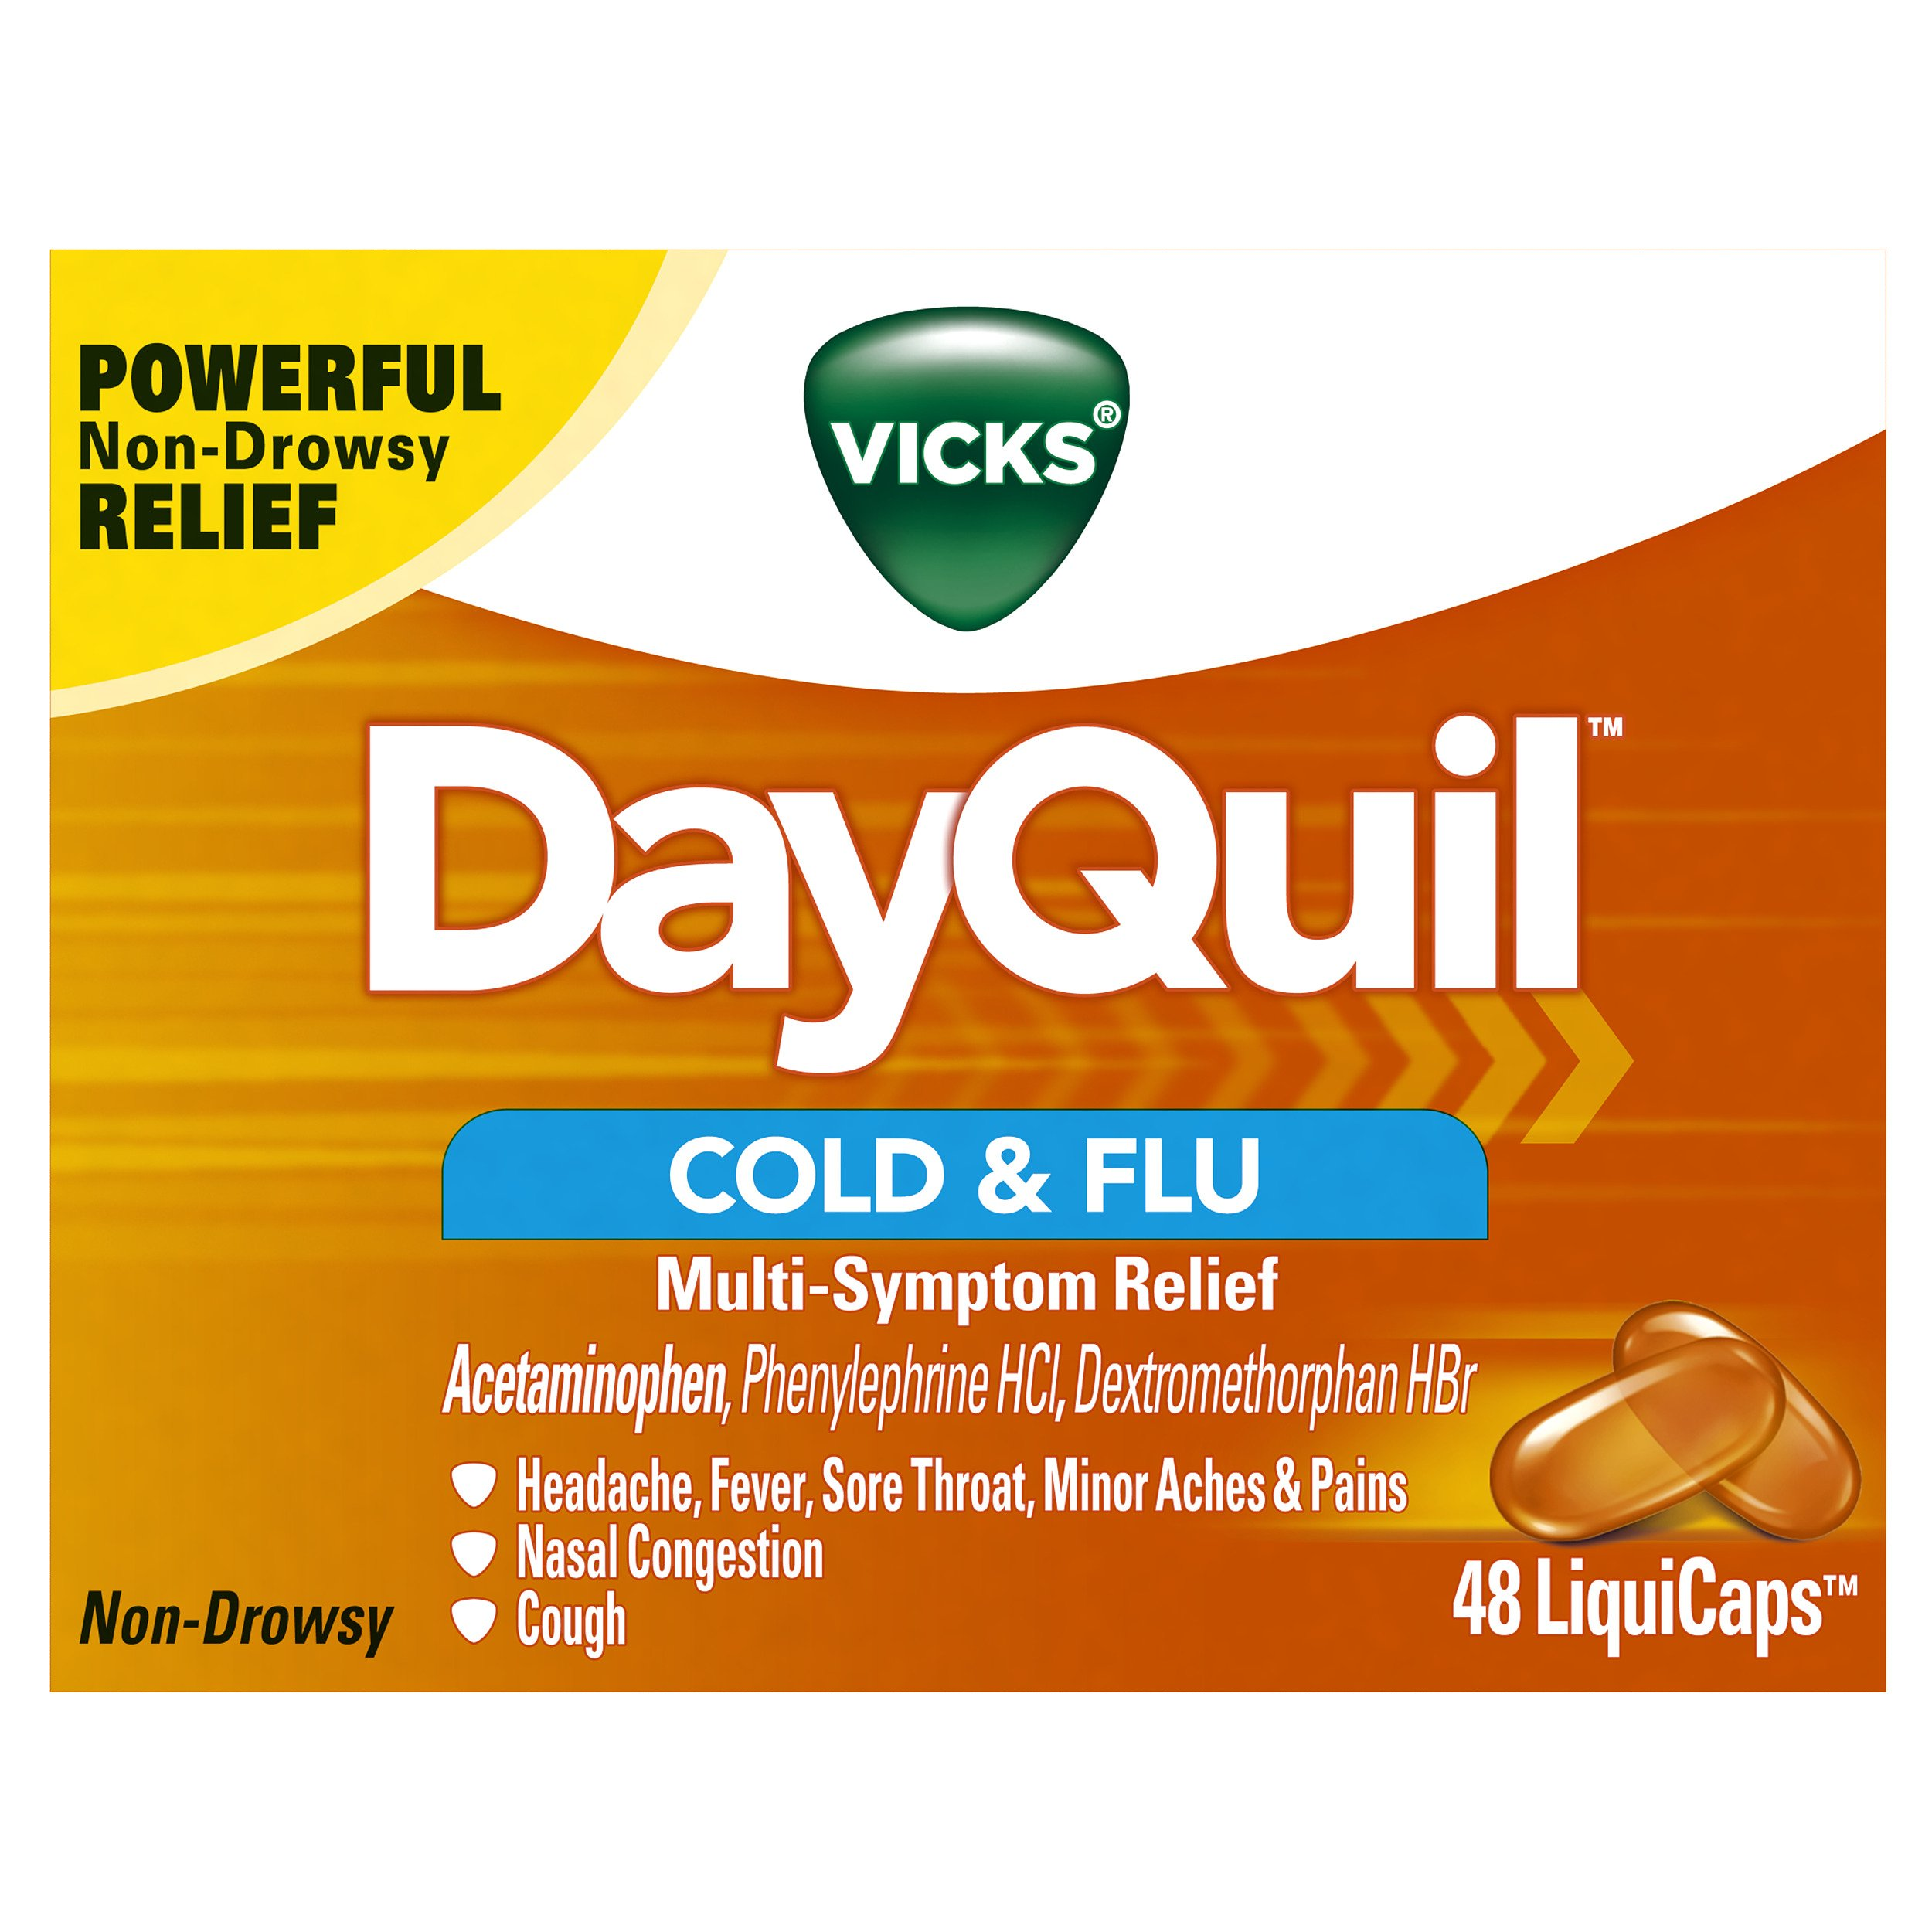 Vicks DayQuil Cold & Flu Multi-Symptom Relief LiquiCaps 48 Count (Packaging May Vary)